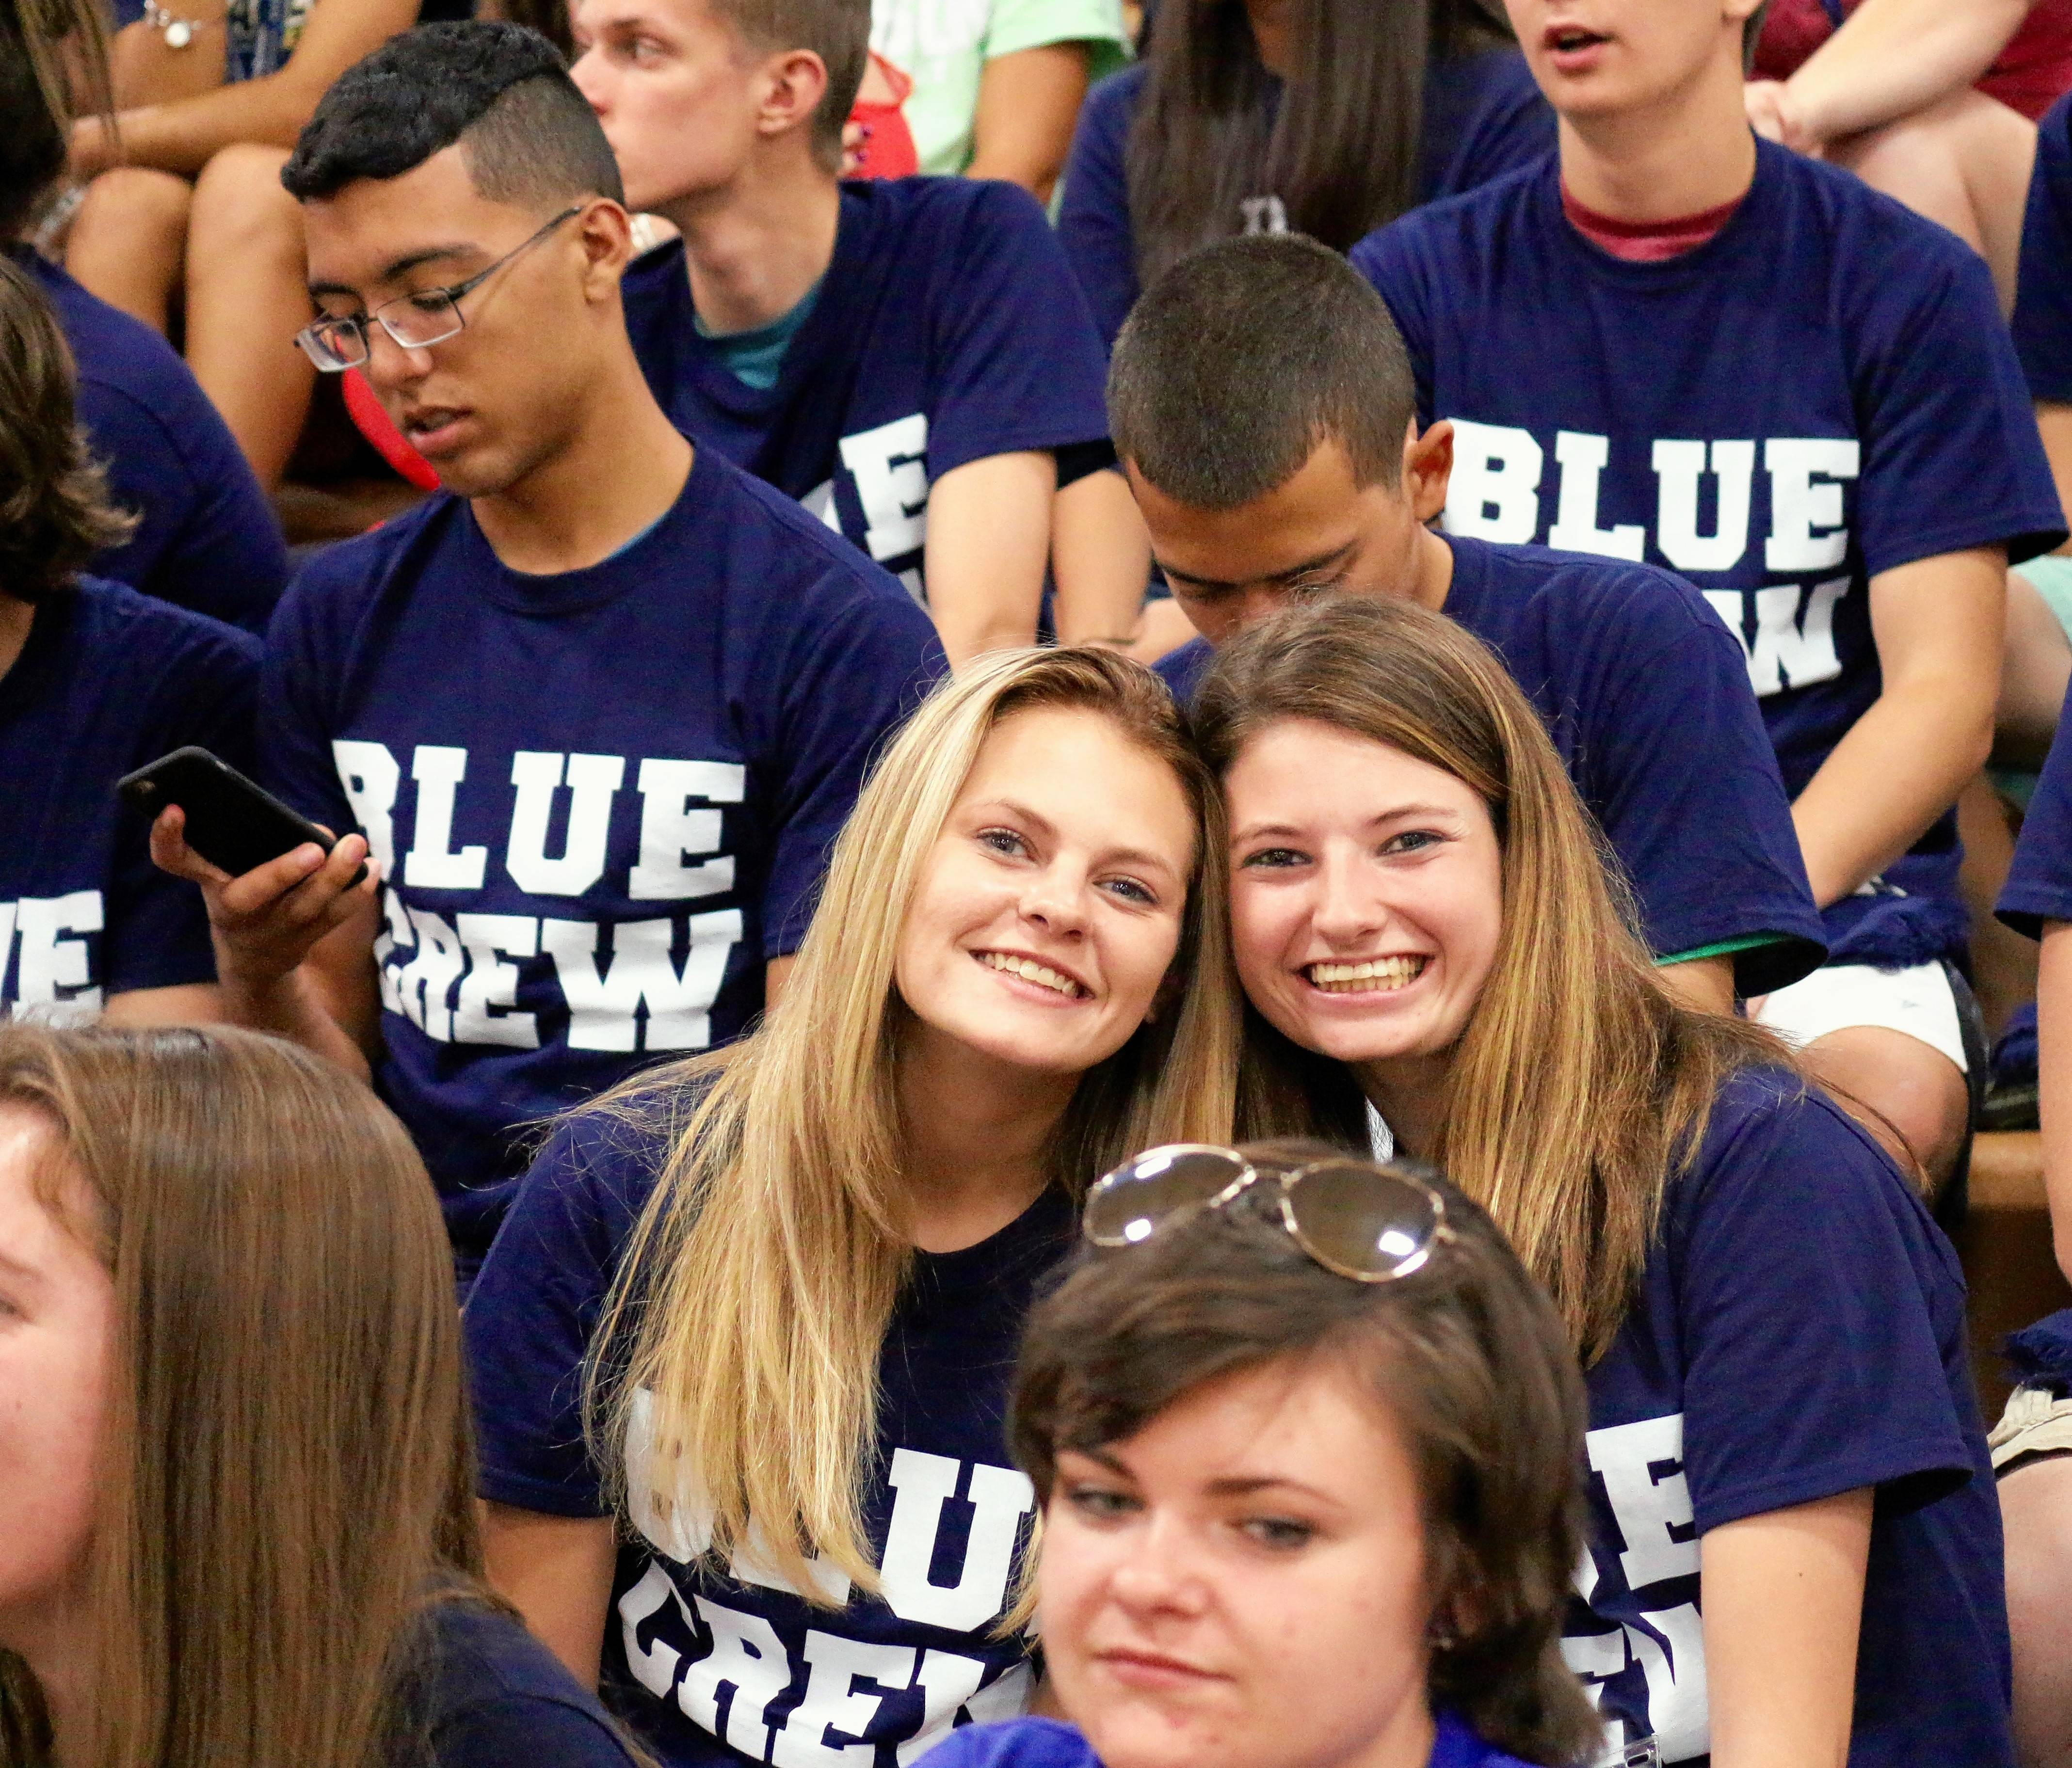 On Saturday, Aug. 18, all new students at Judson University will get a free Blue Crew T-shirt and  cheer on the Eagles during a women's volleyball match.